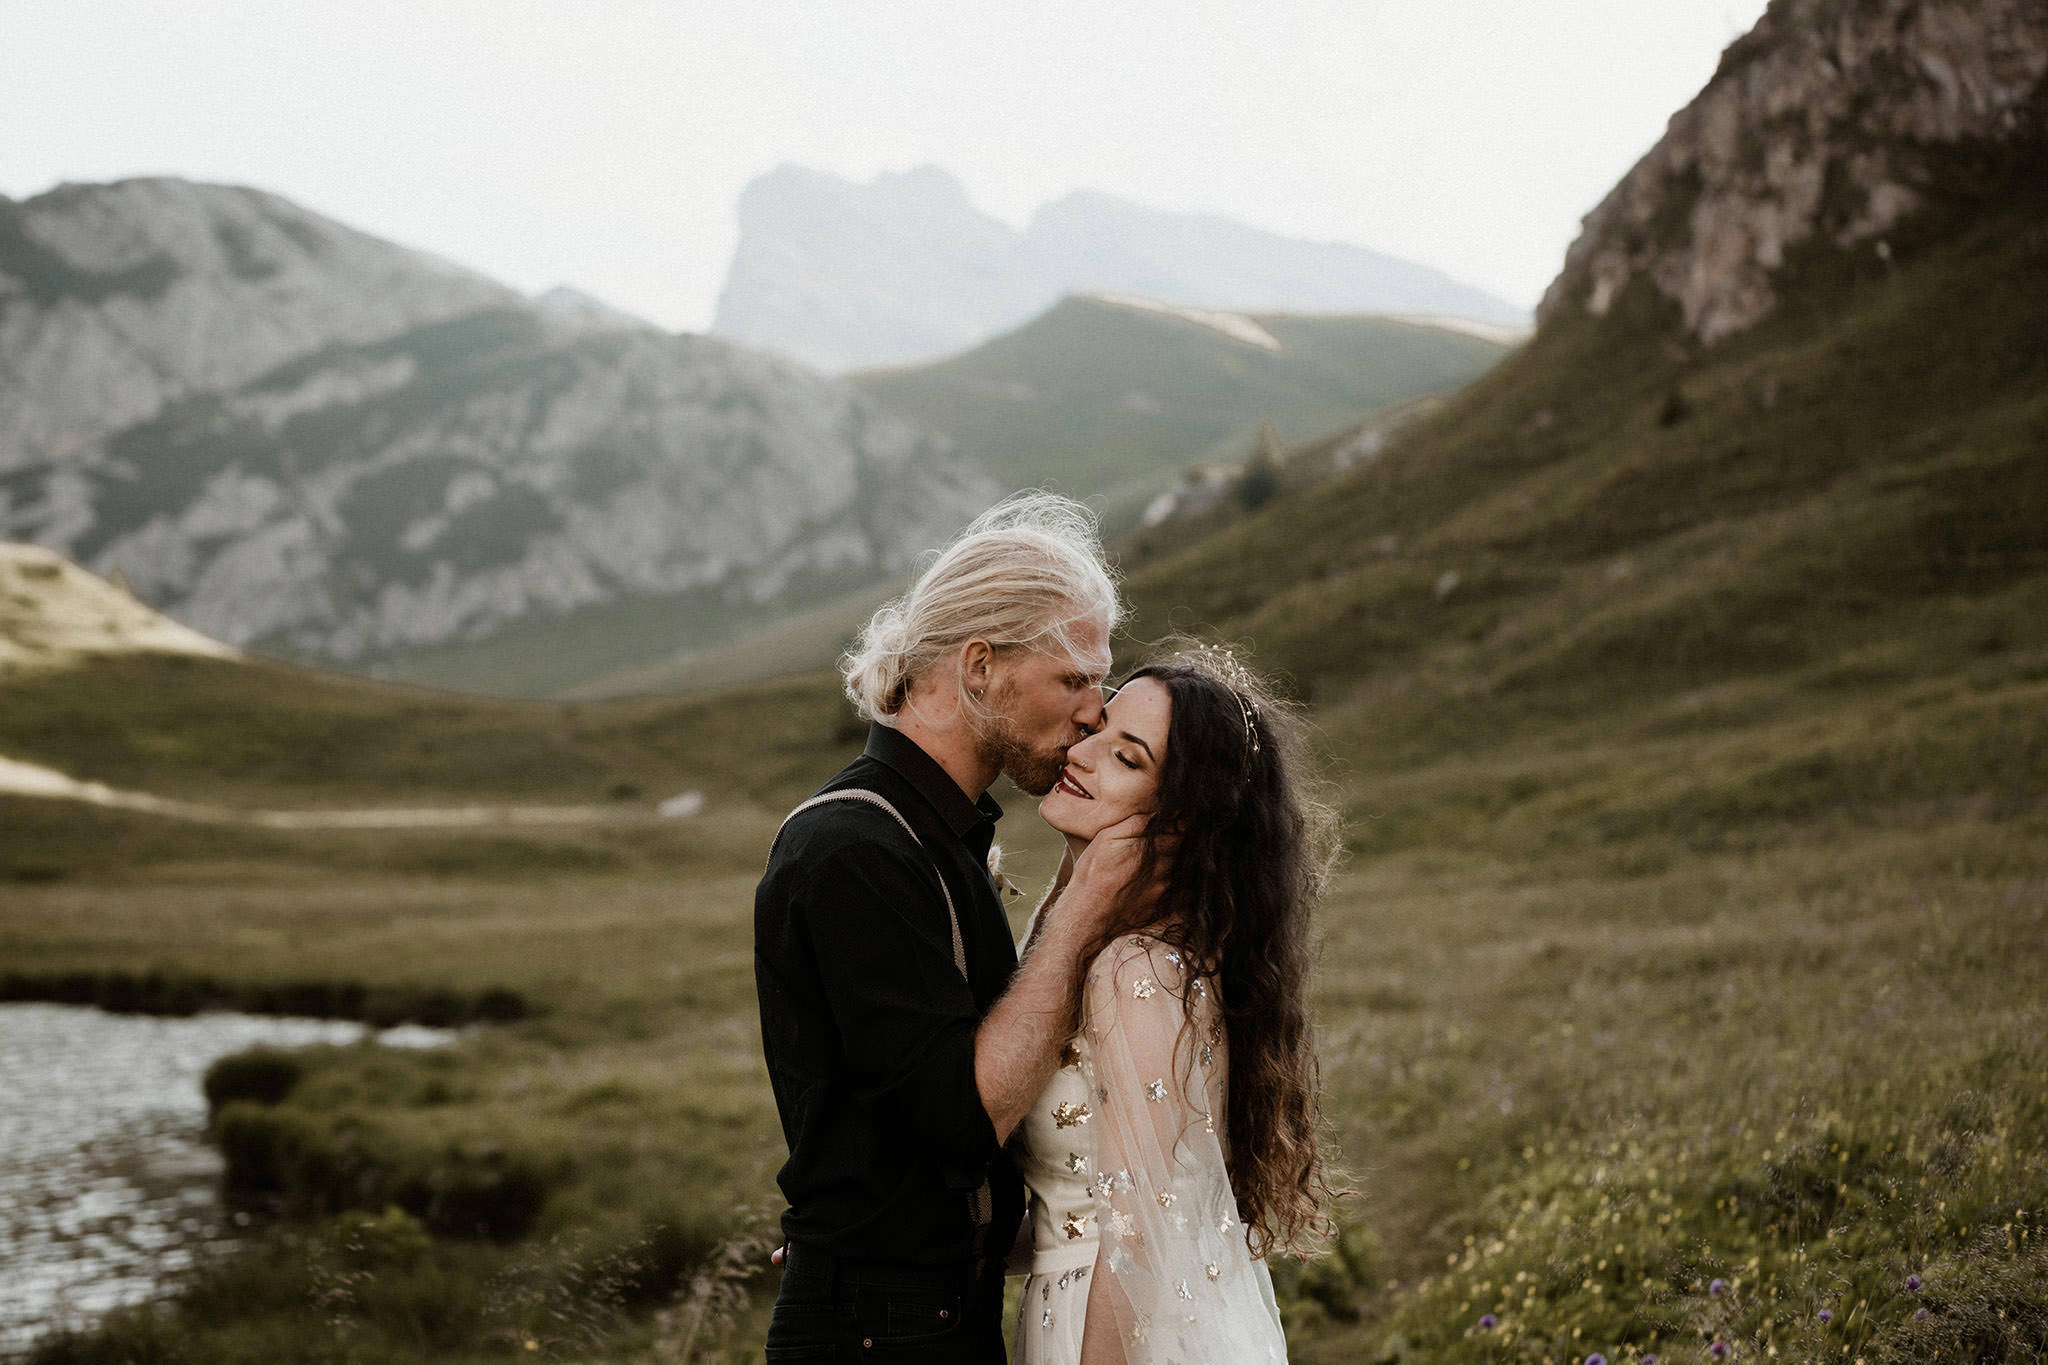 A tall groom gently kisses his girl, while standing in the middle of the Dolomite mountains for their elopement